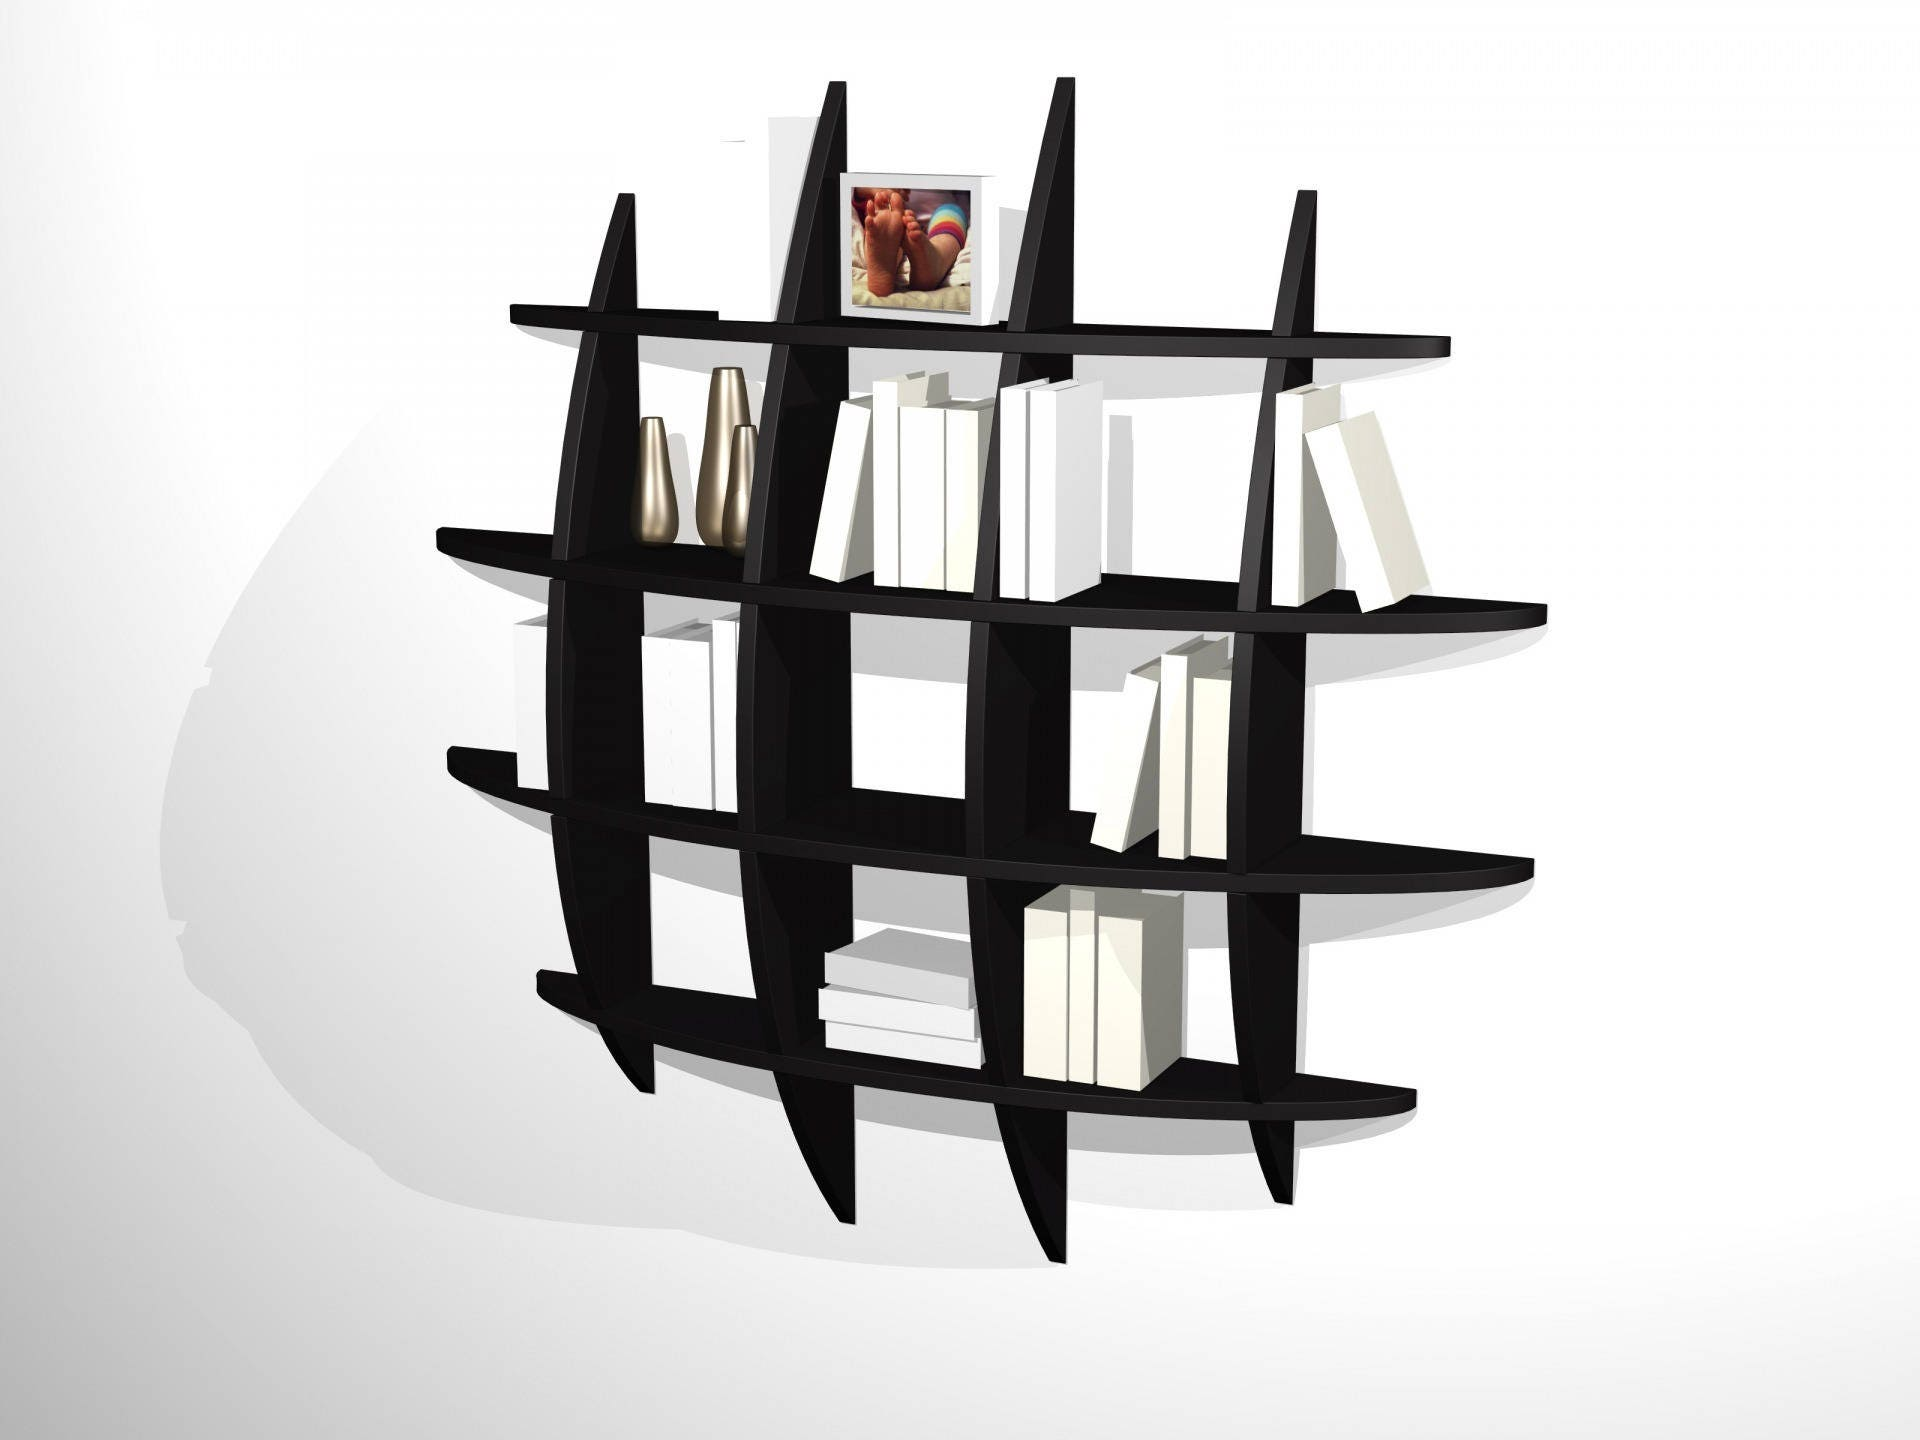 biblioth que murale design retento ronde pm noire. Black Bedroom Furniture Sets. Home Design Ideas